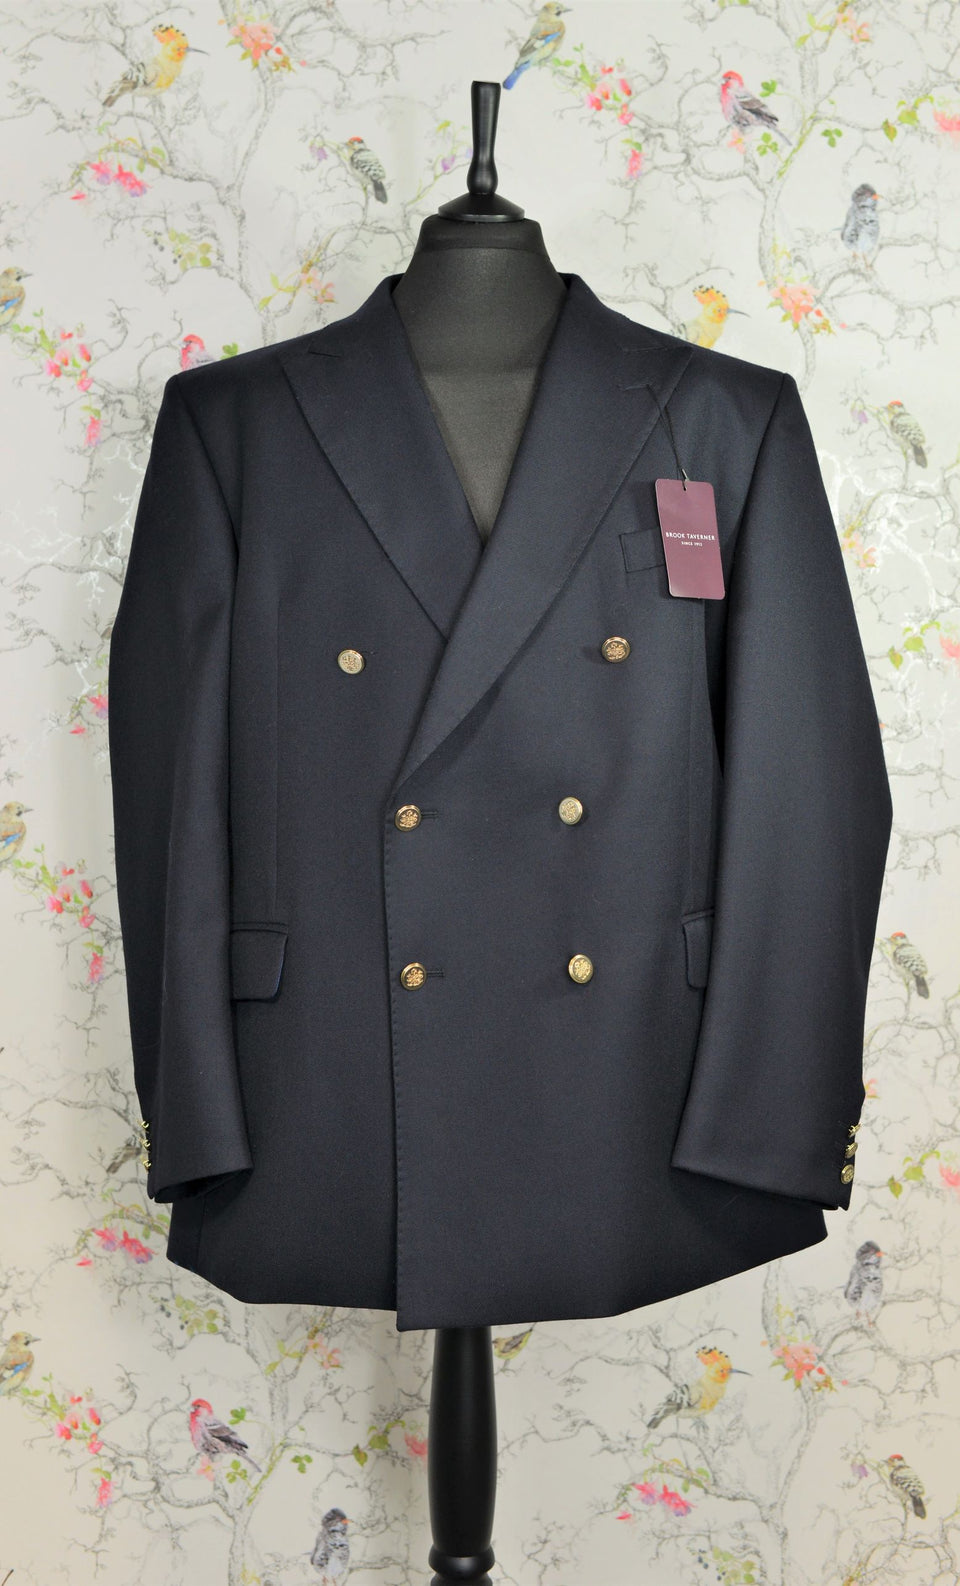 BROOK TAVERNER Men's Reigate Double Breasted Black/Navy Wool Blazer, Size 48''(60). NEW.